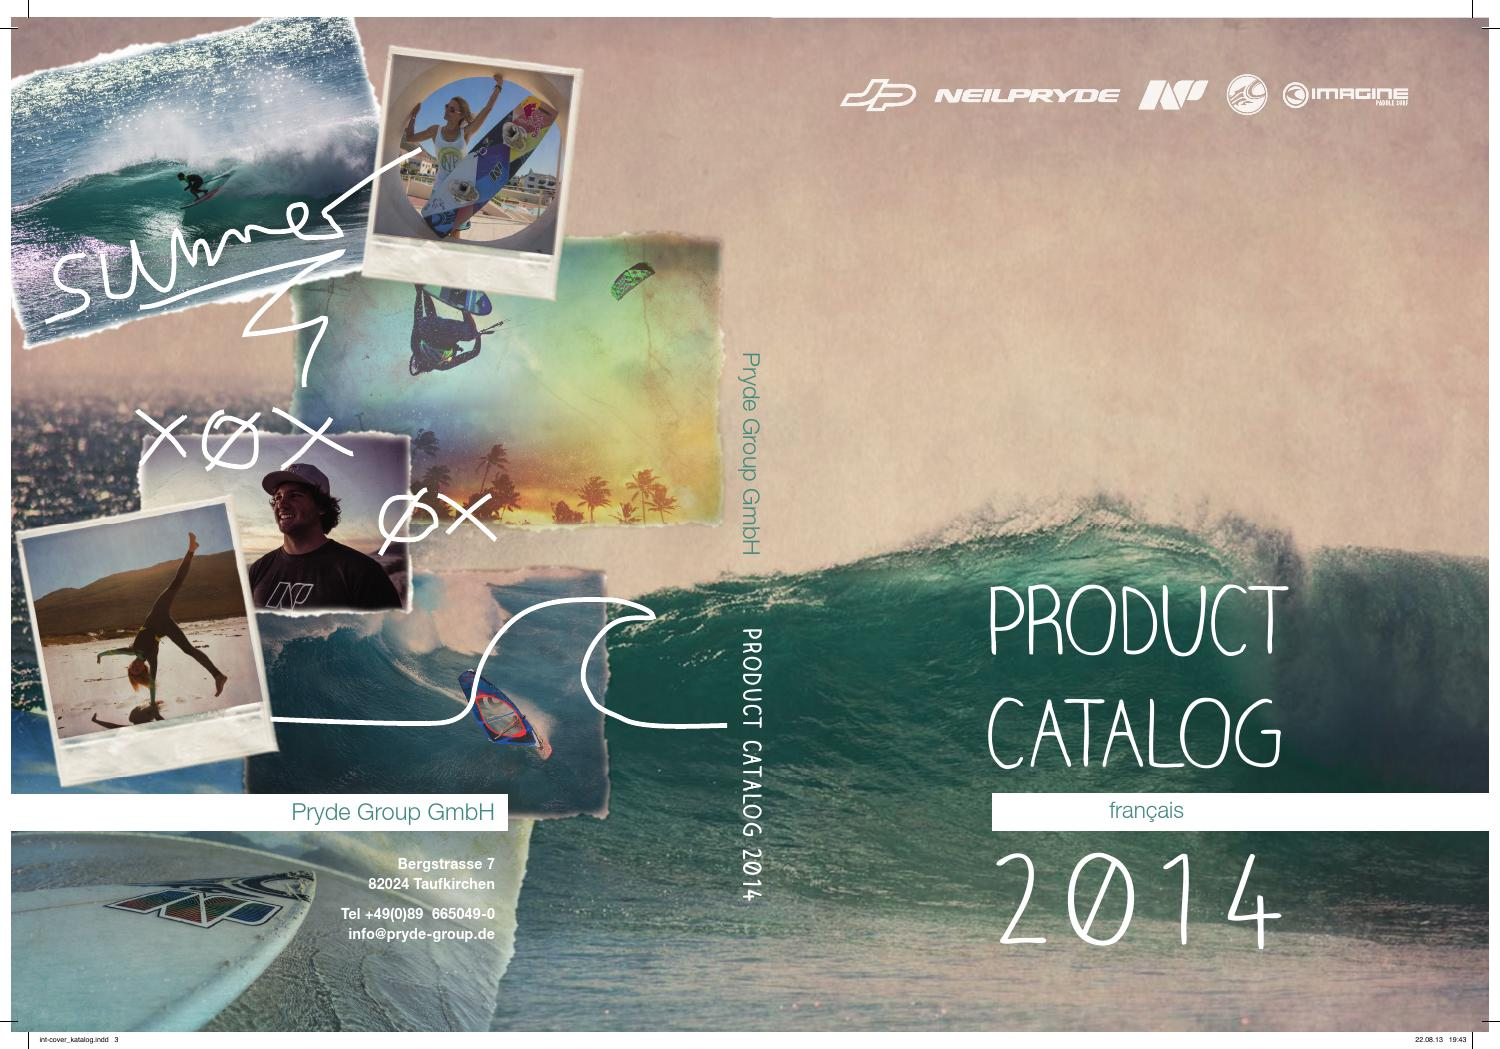 Pryde Group Orderkatalog 2014 French by Pryde Group GmbH - issuu 9db3340632a